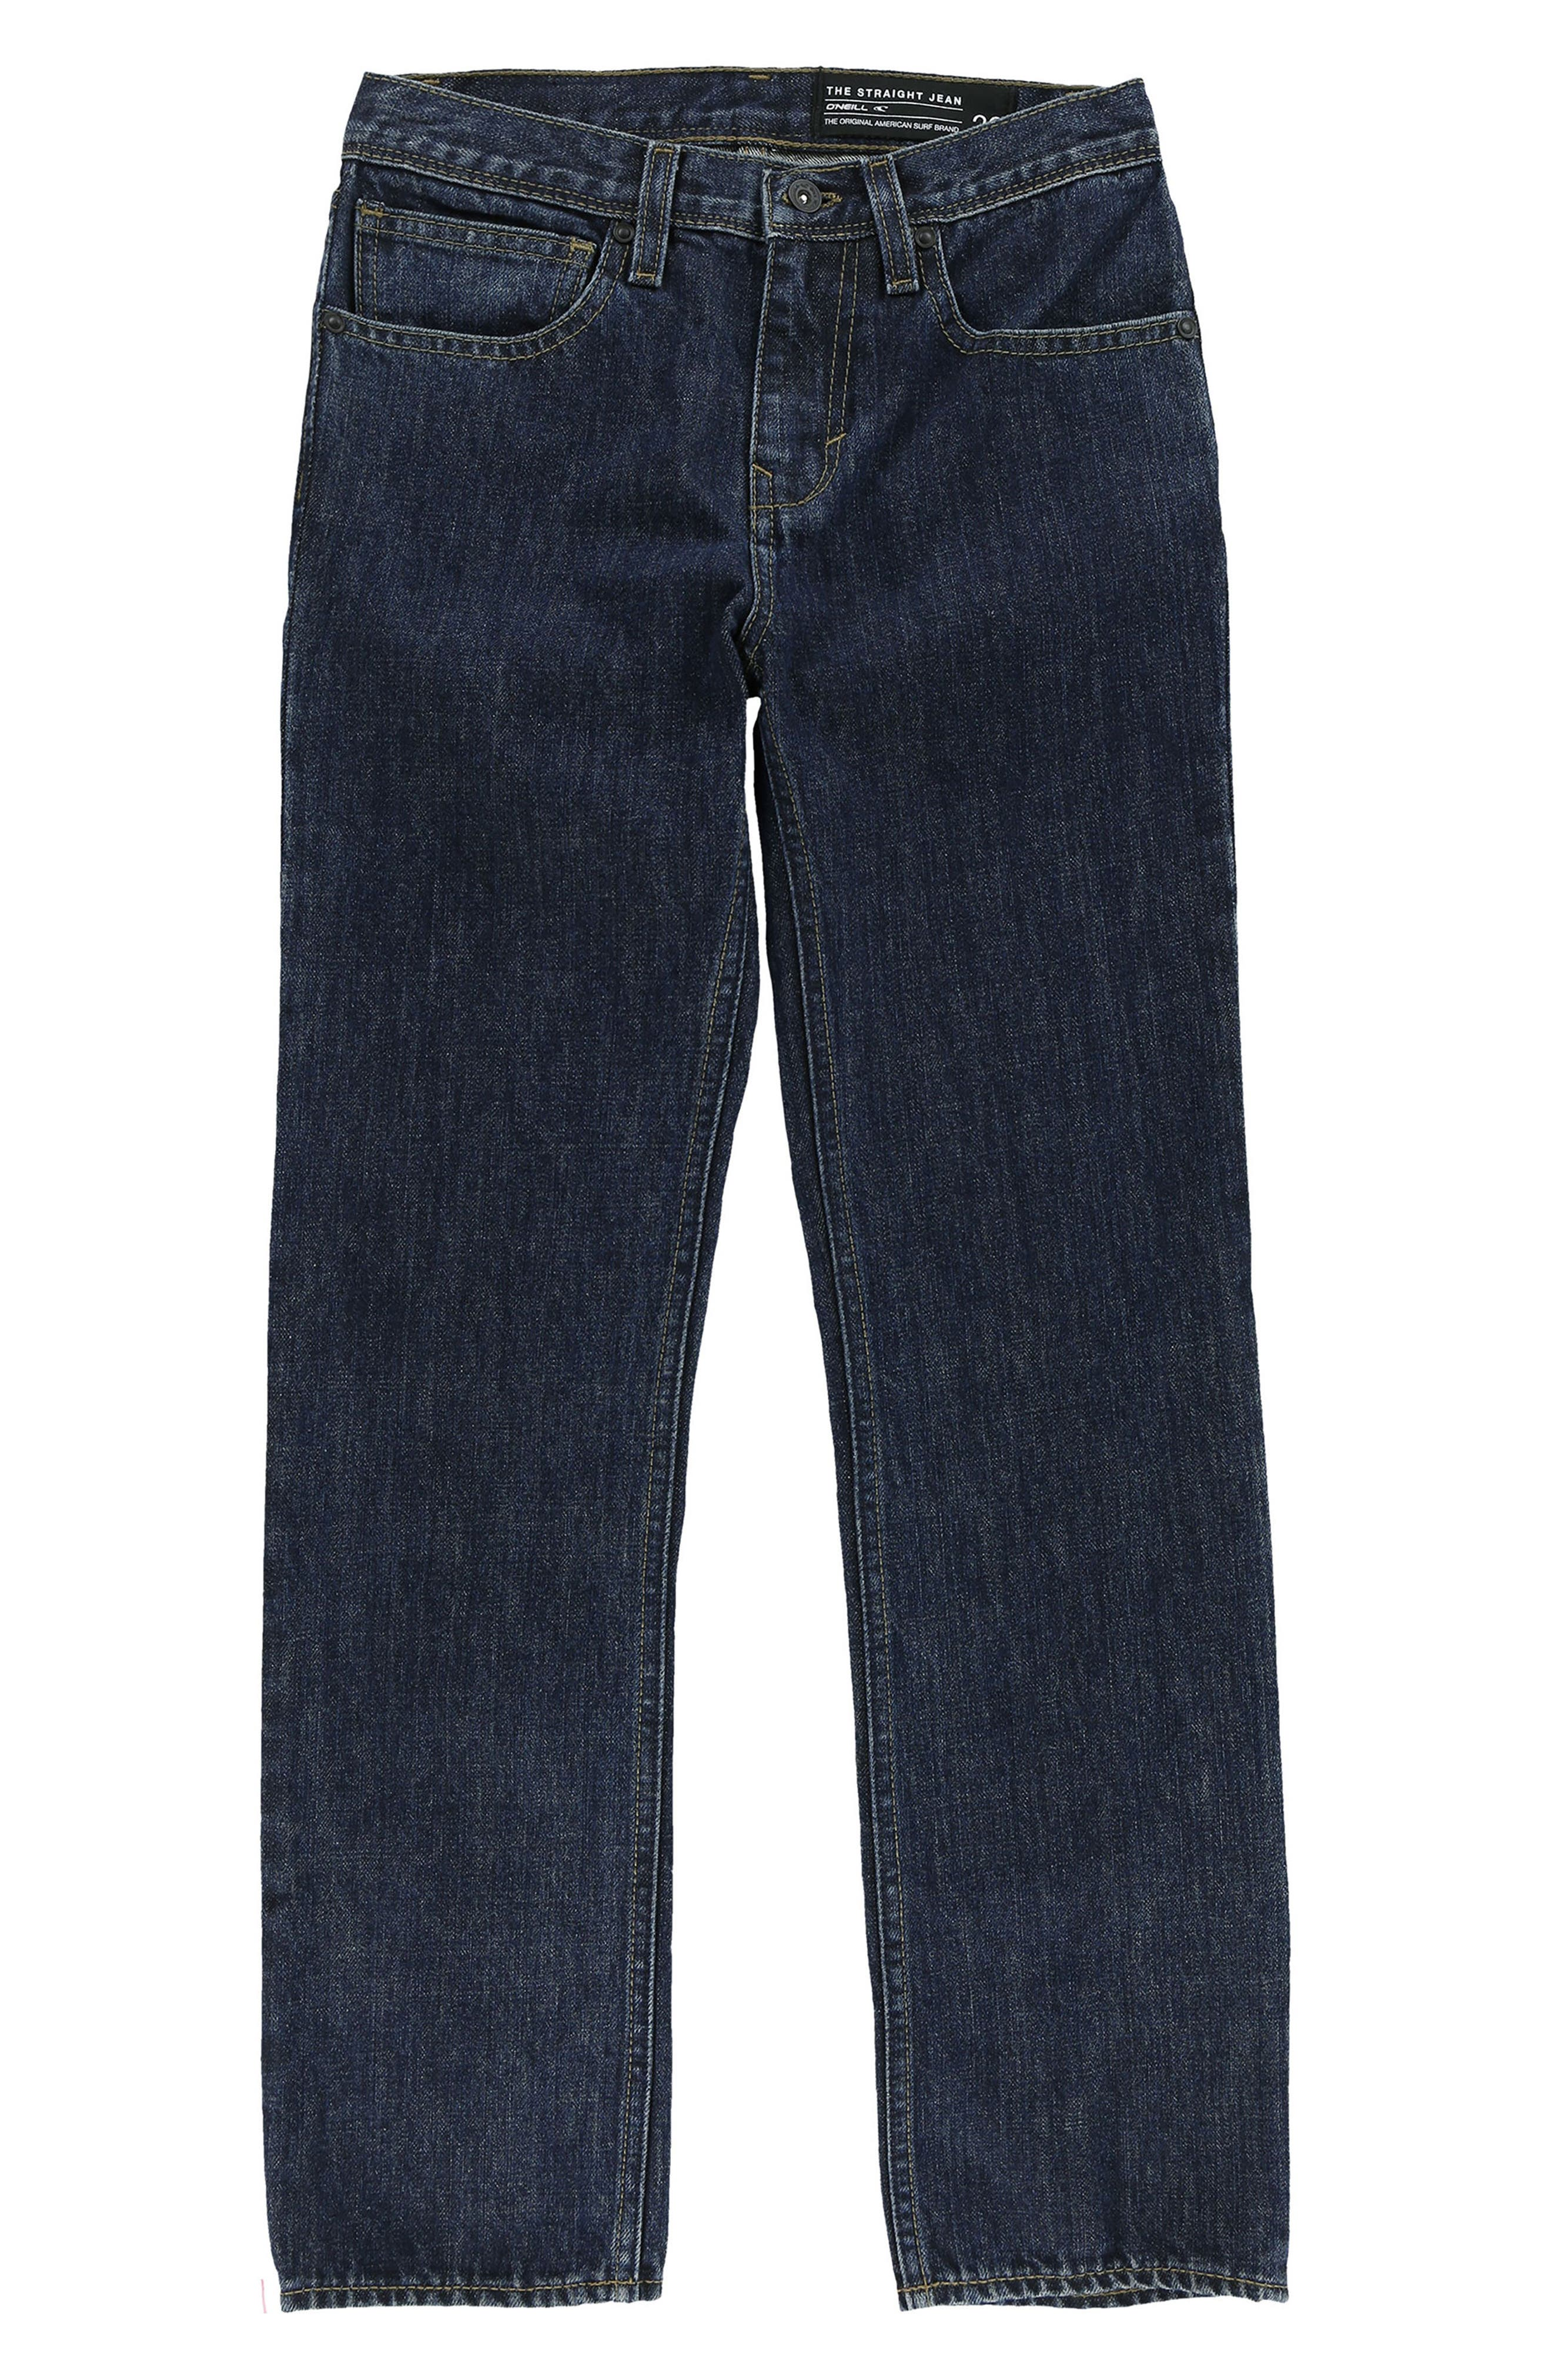 O'Neill The Straight Jeans (Big Boys)